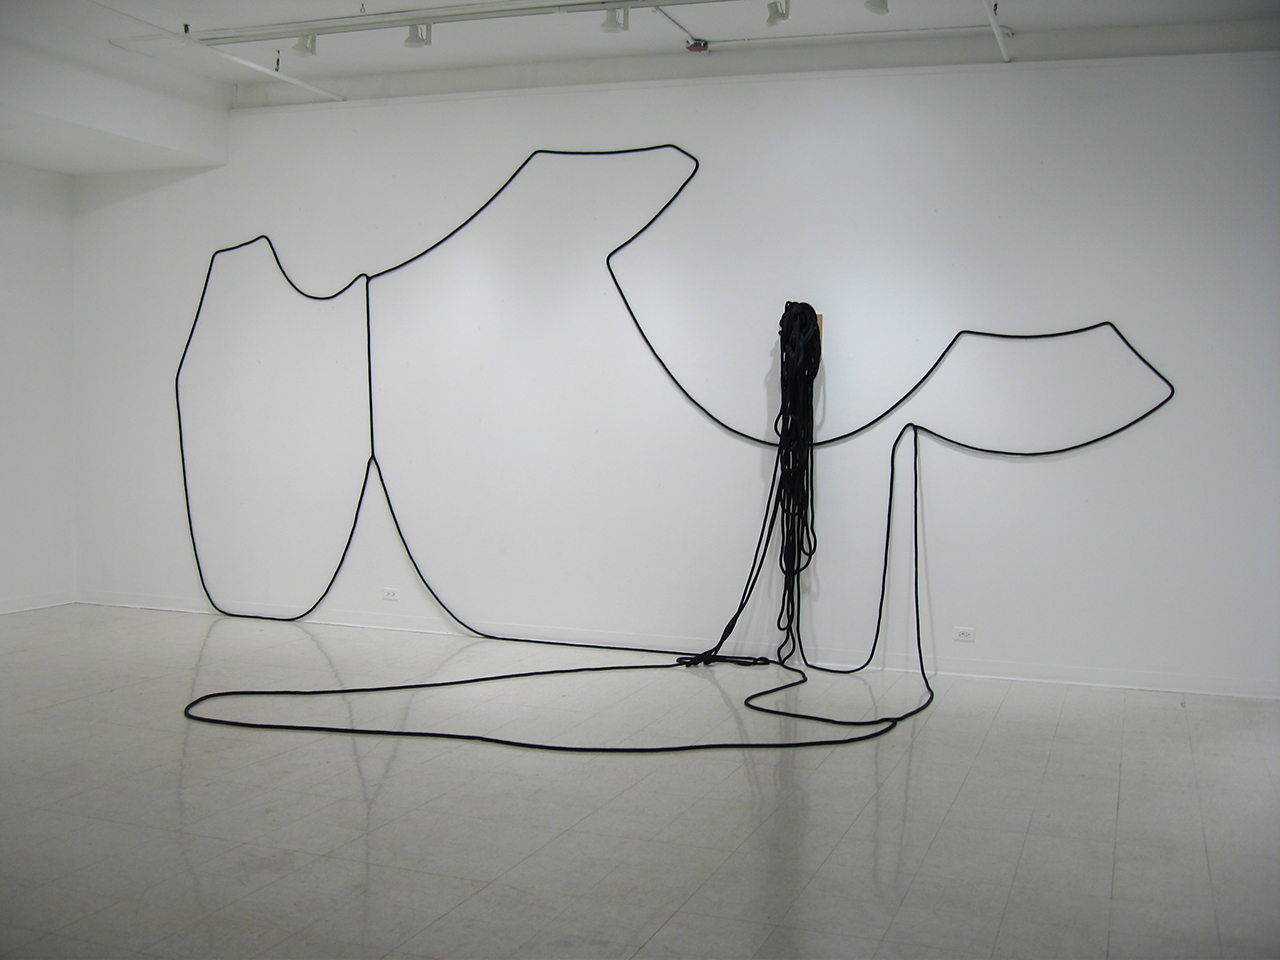 Hanging Drawing (Half-Drawn) , 2008, rope and wood shelf, dimensions variable approx. 15' x 30' x 8'